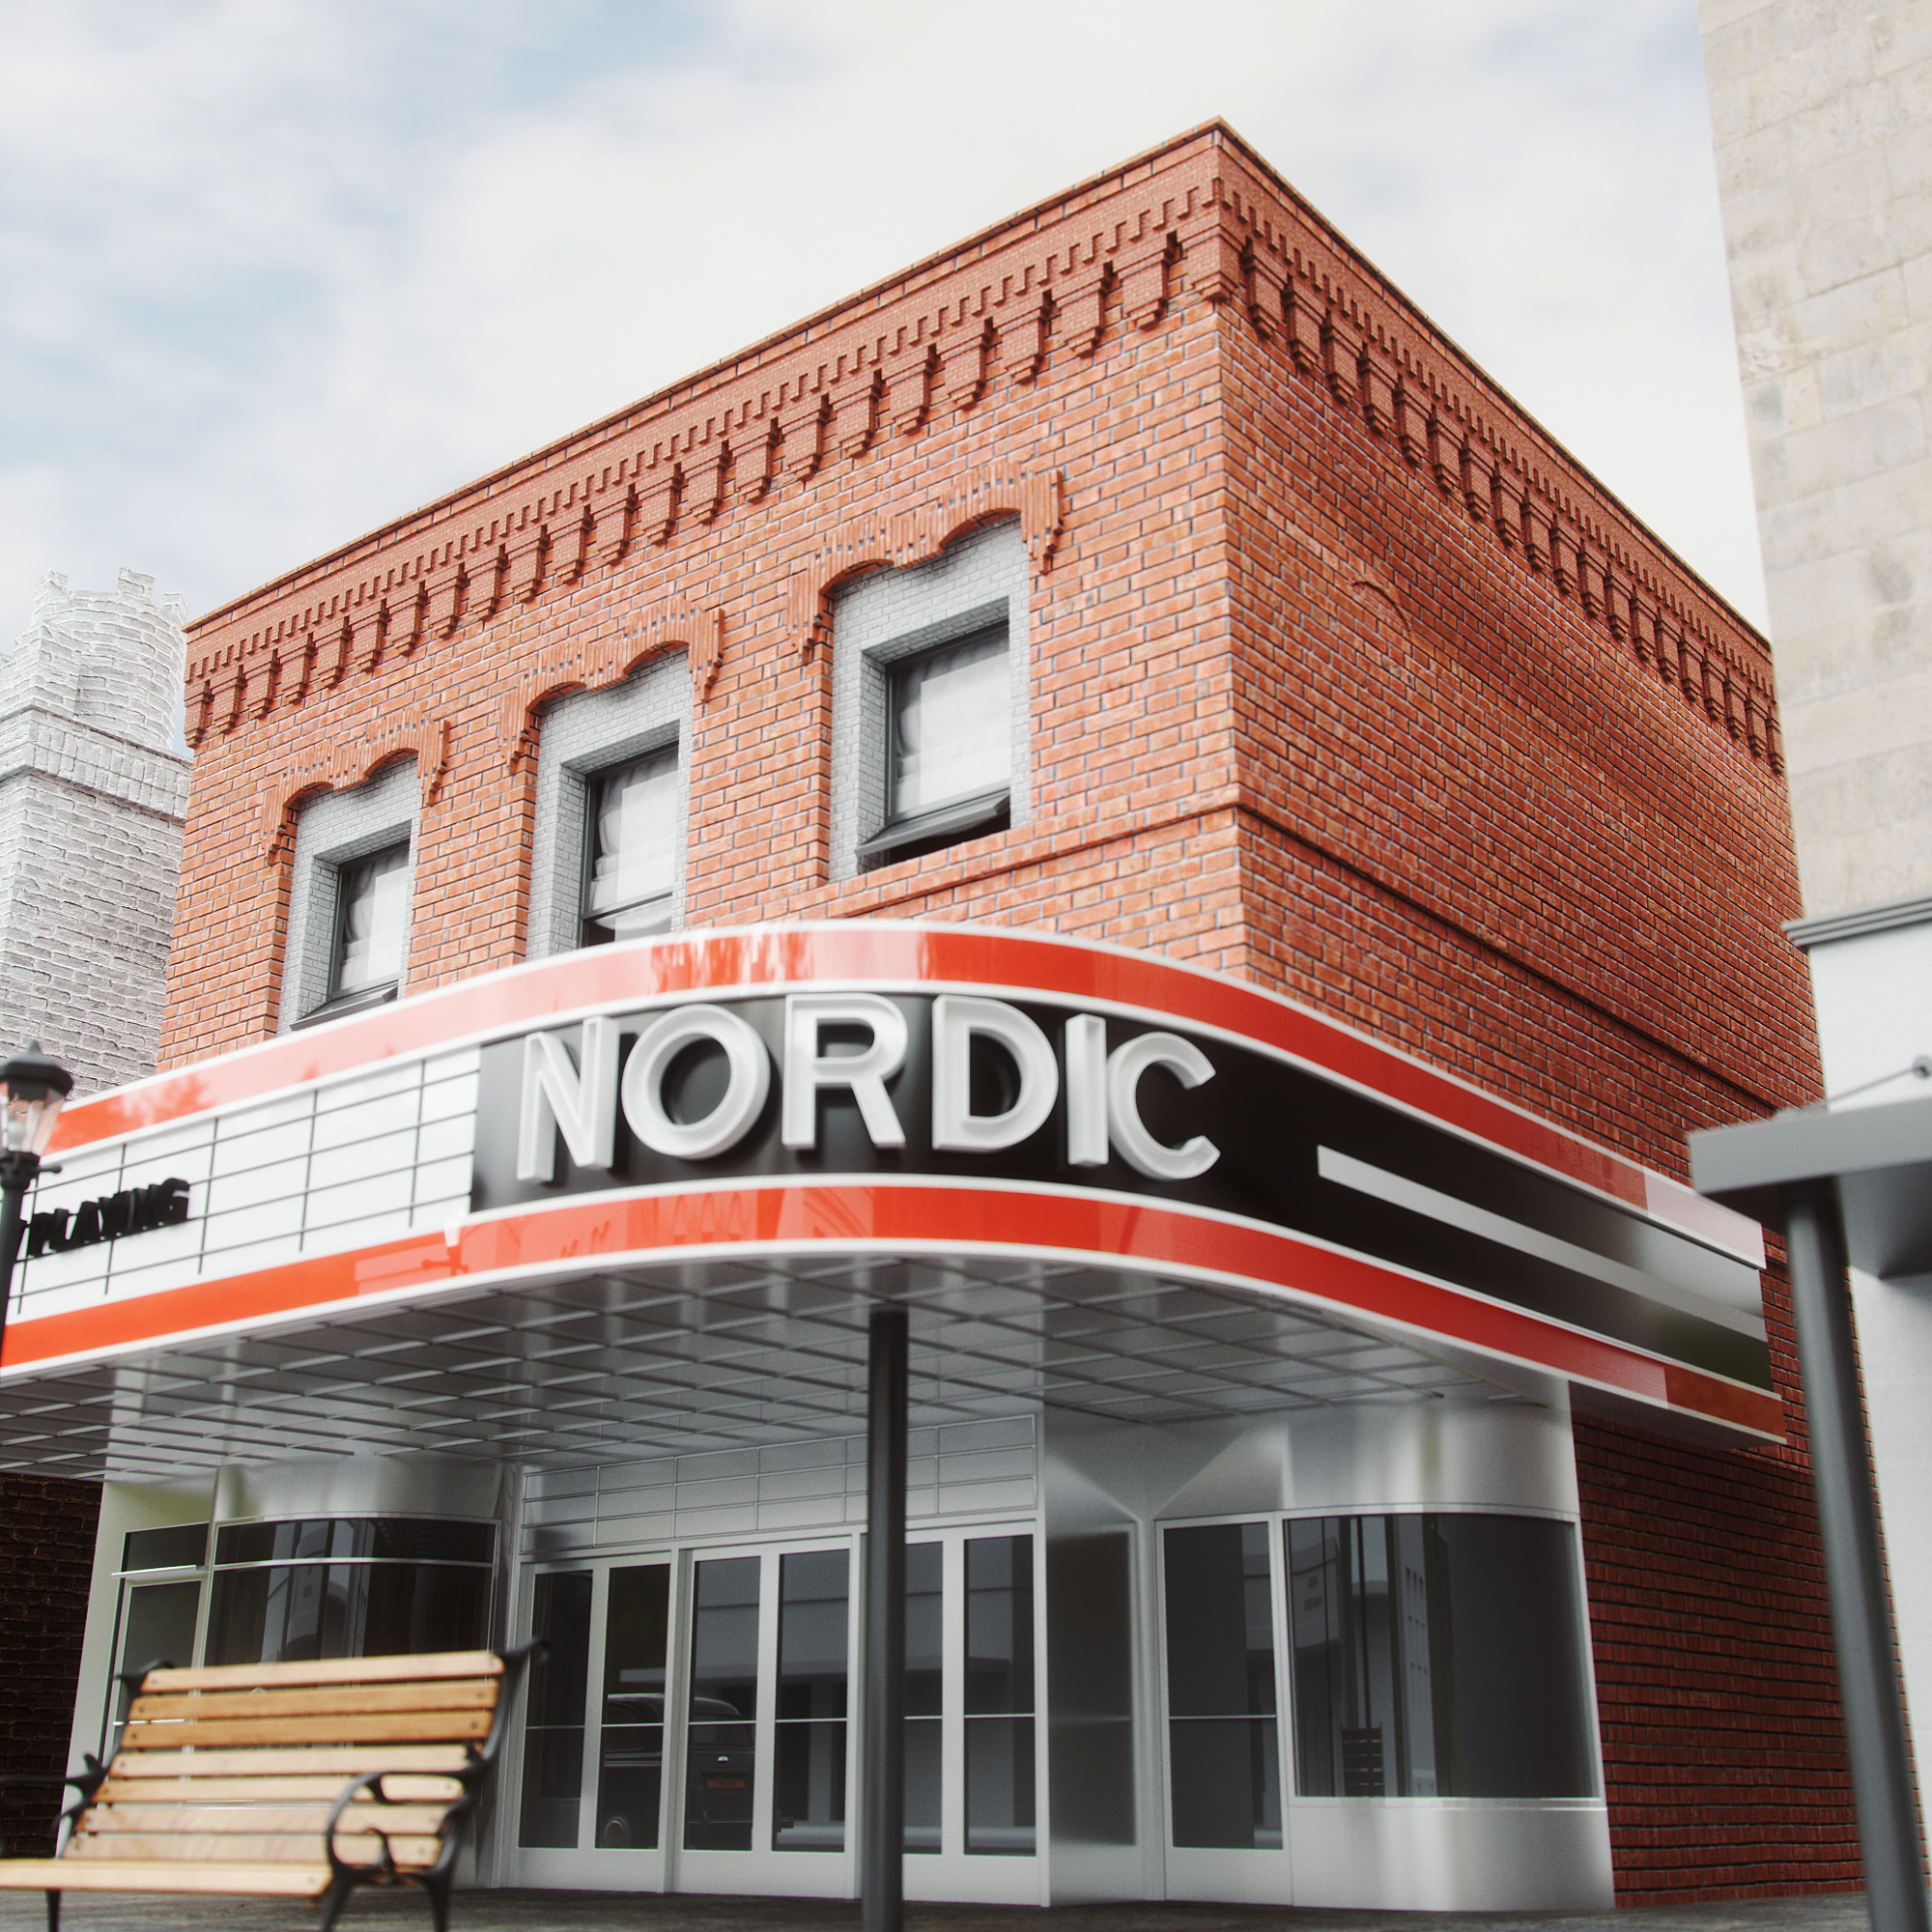 The Nordic Theater Building in Marquette, MI